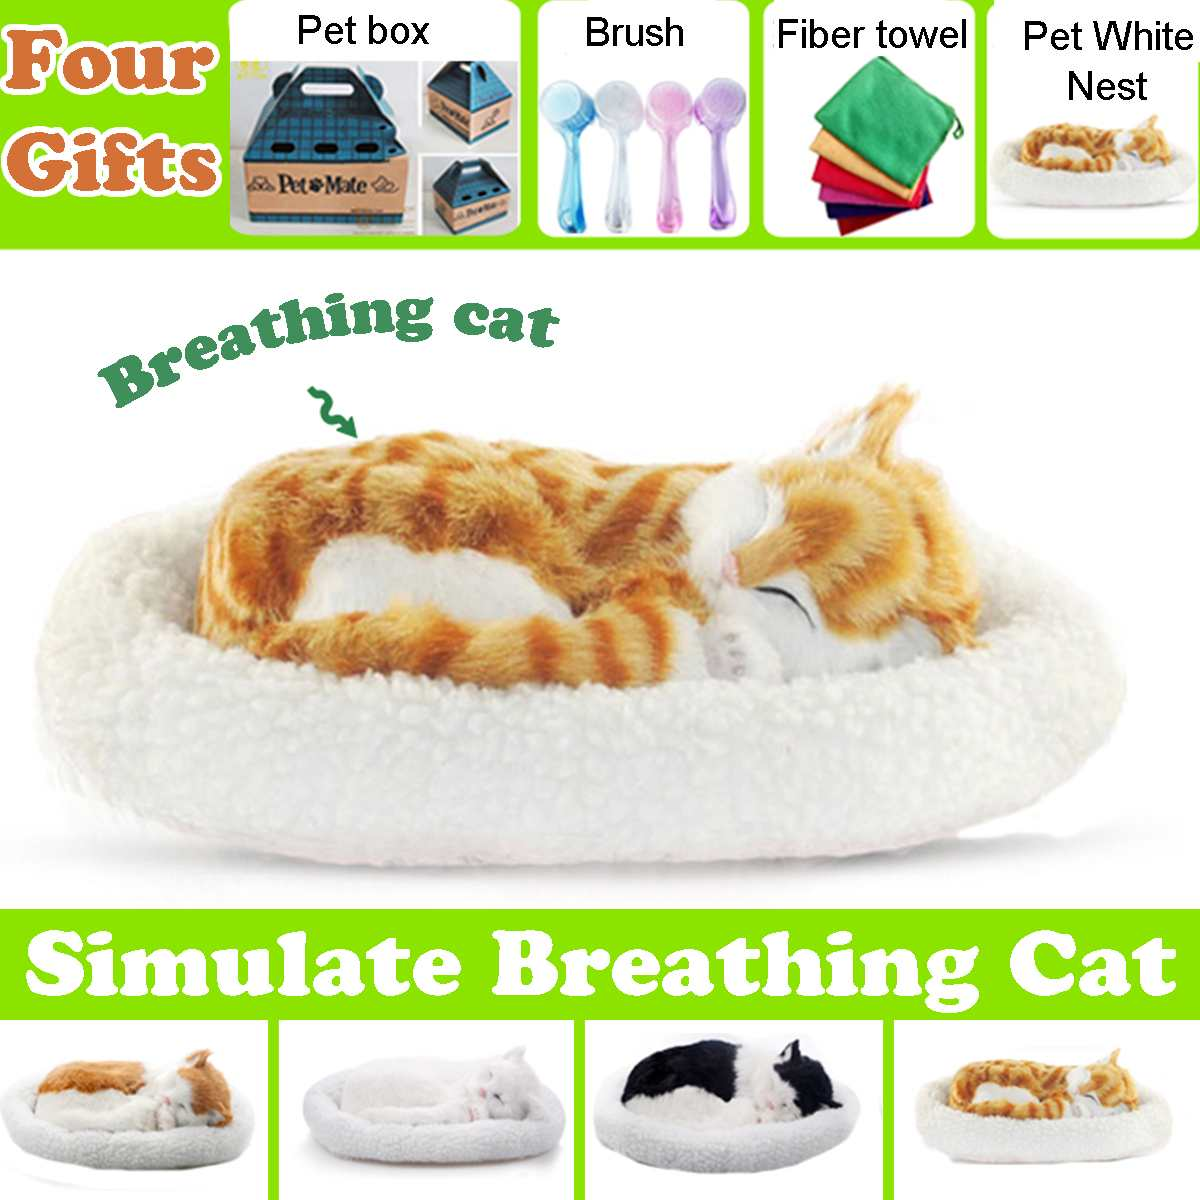 Simulation Breathing Dog Control Action Figures Battery Soft Doll Stuffed Plush Animal Toy Girls Kids Lover Children Gift